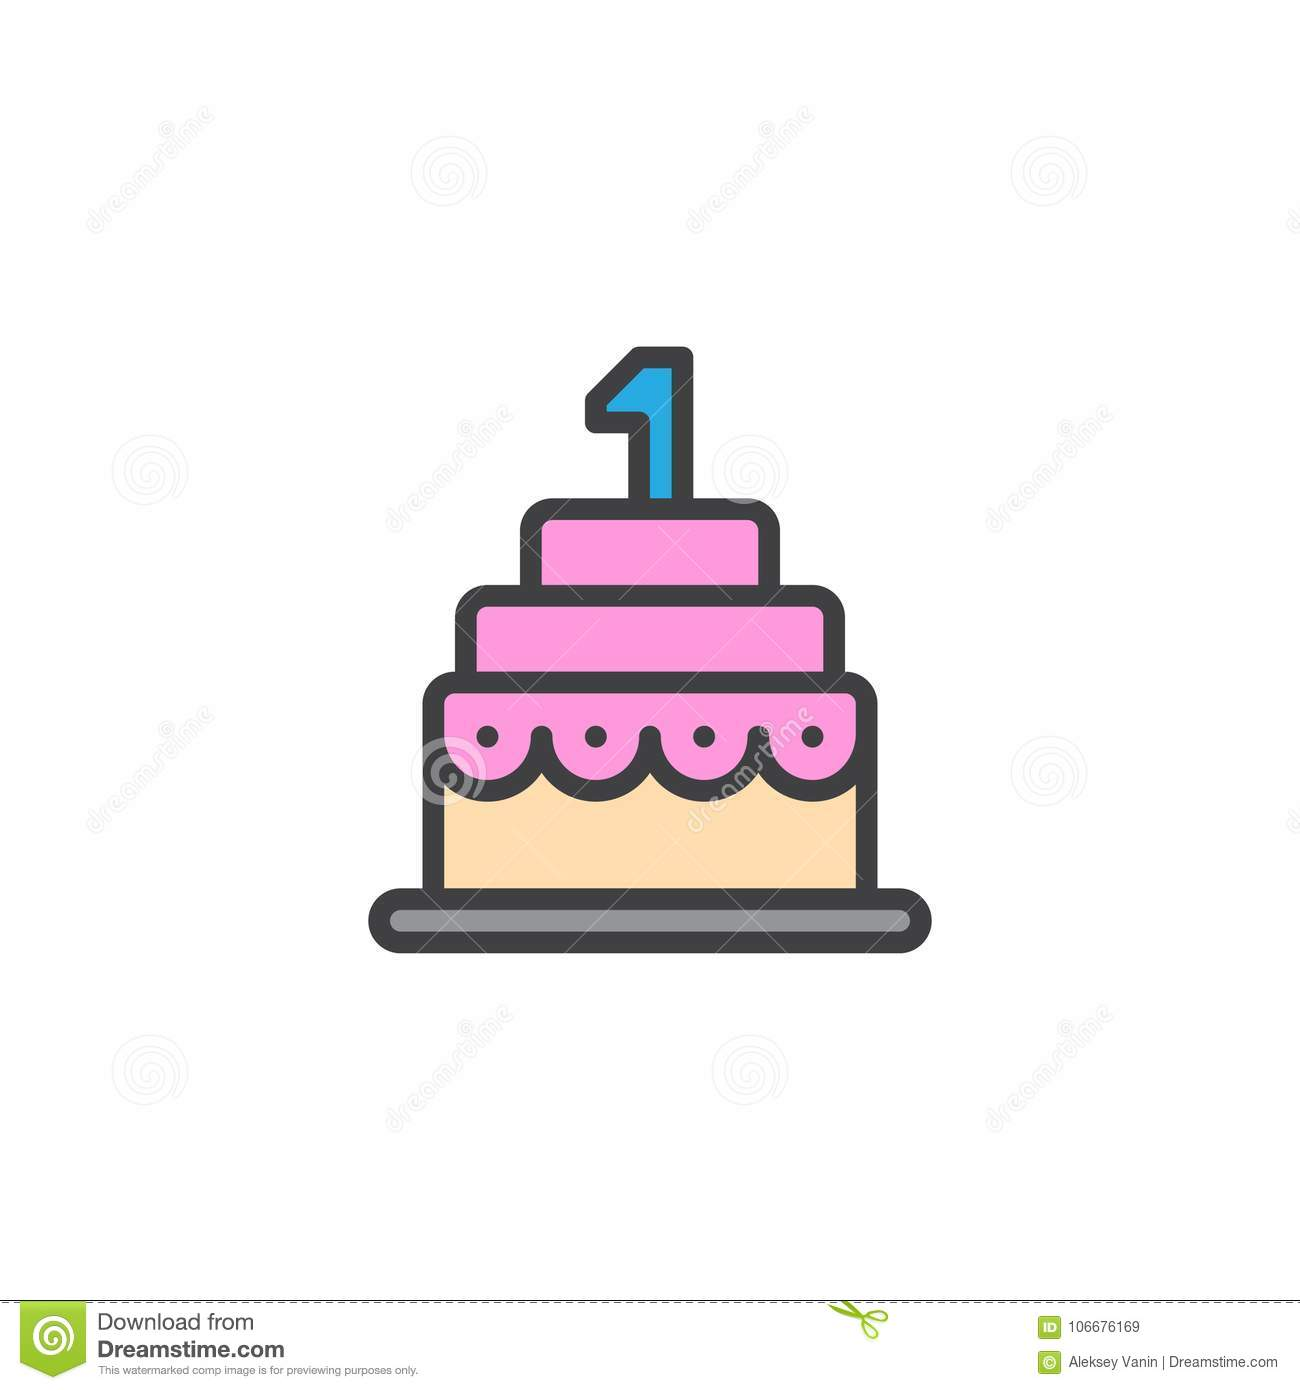 Birthday Cake Filled Outline Icon Stock Vector Illustration of